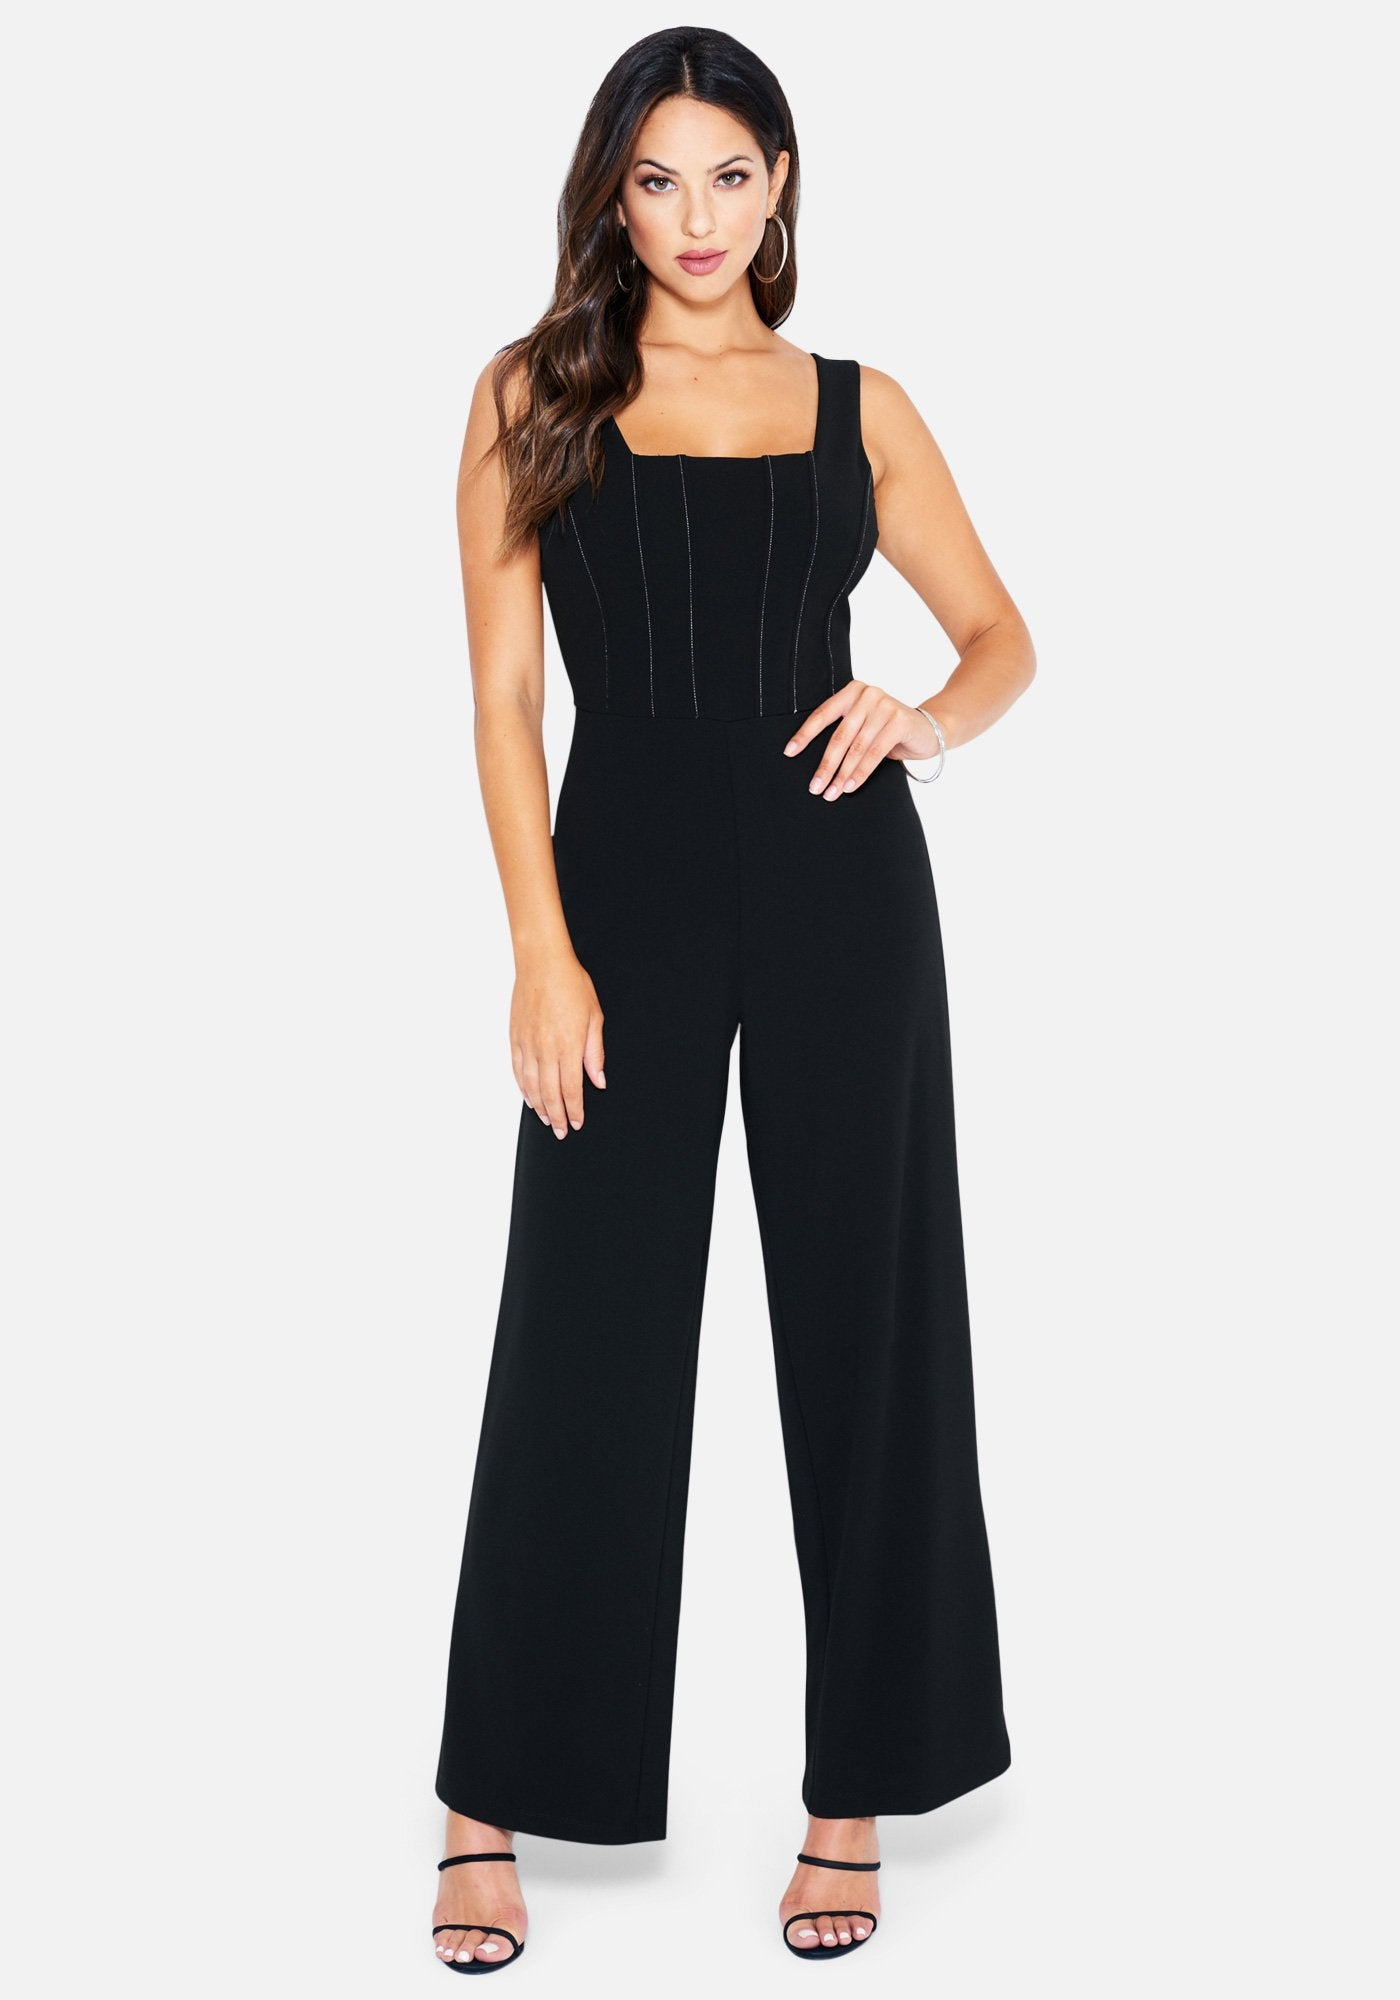 Bebe Women's Plunging Ruffle Back Jumpsuit, Size 2 in Black/Ivory Spandex